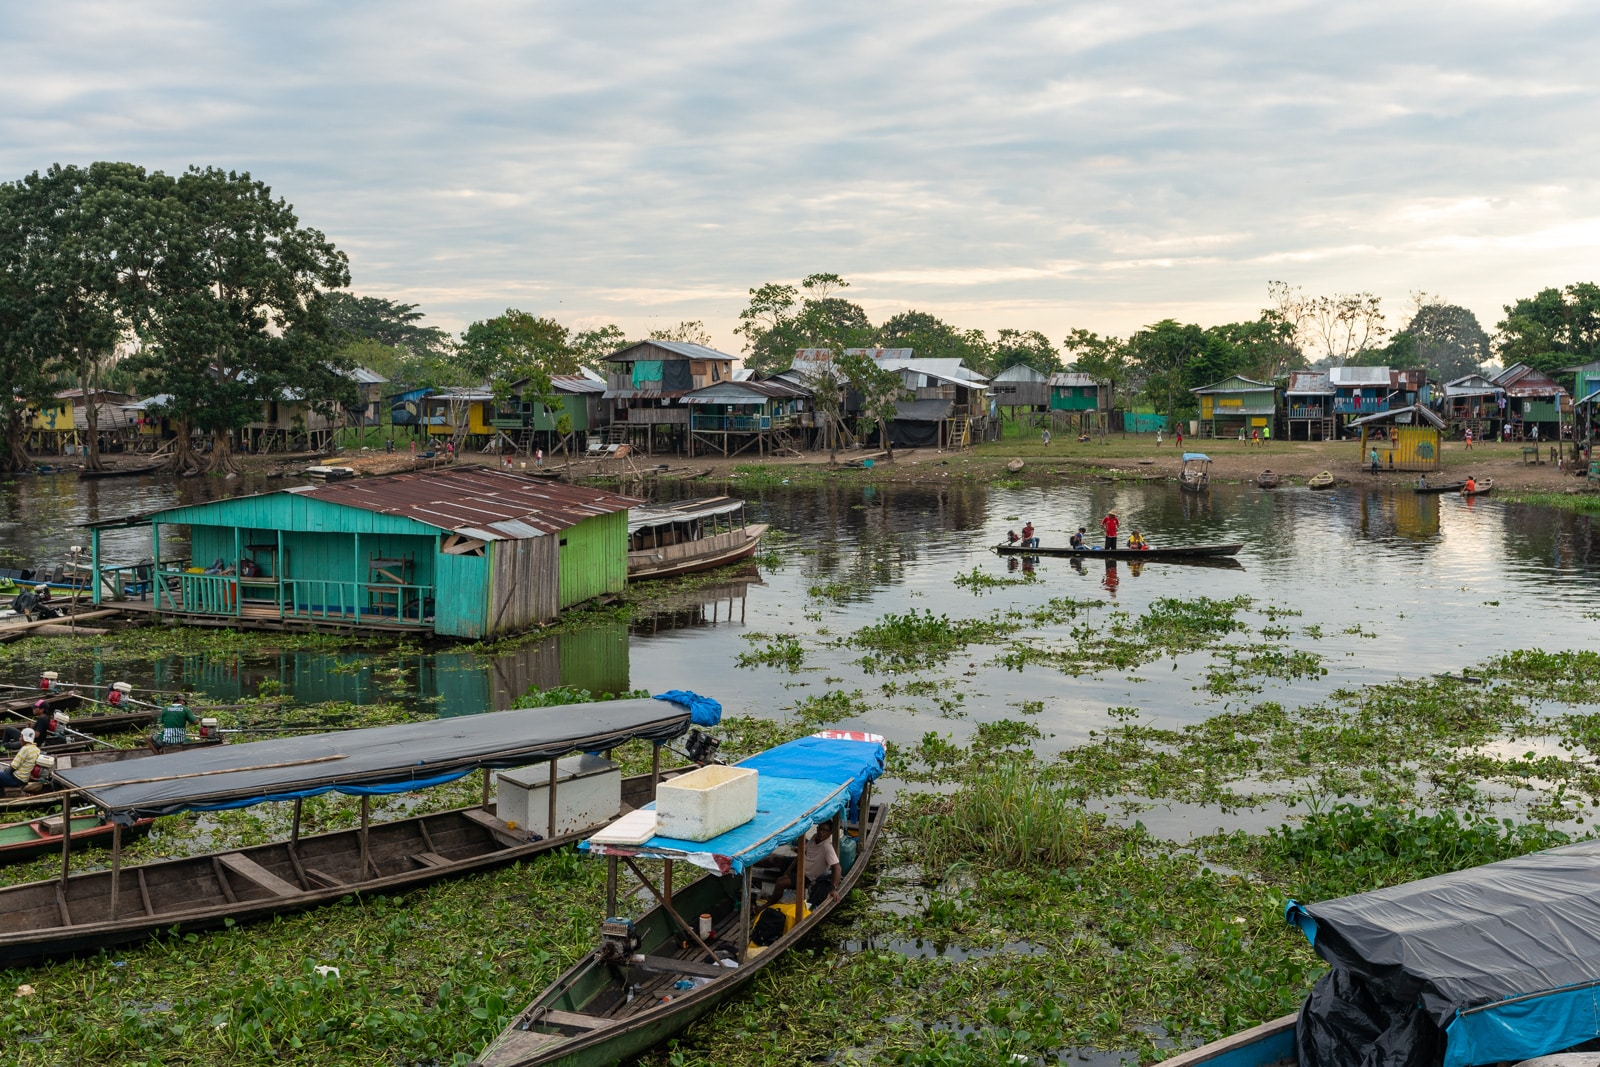 Taking the fast boat from Manaus, Brazil to Leticia, Colombia - Leticia canal at sunset with houses and people - Lost With Purpose travel blog